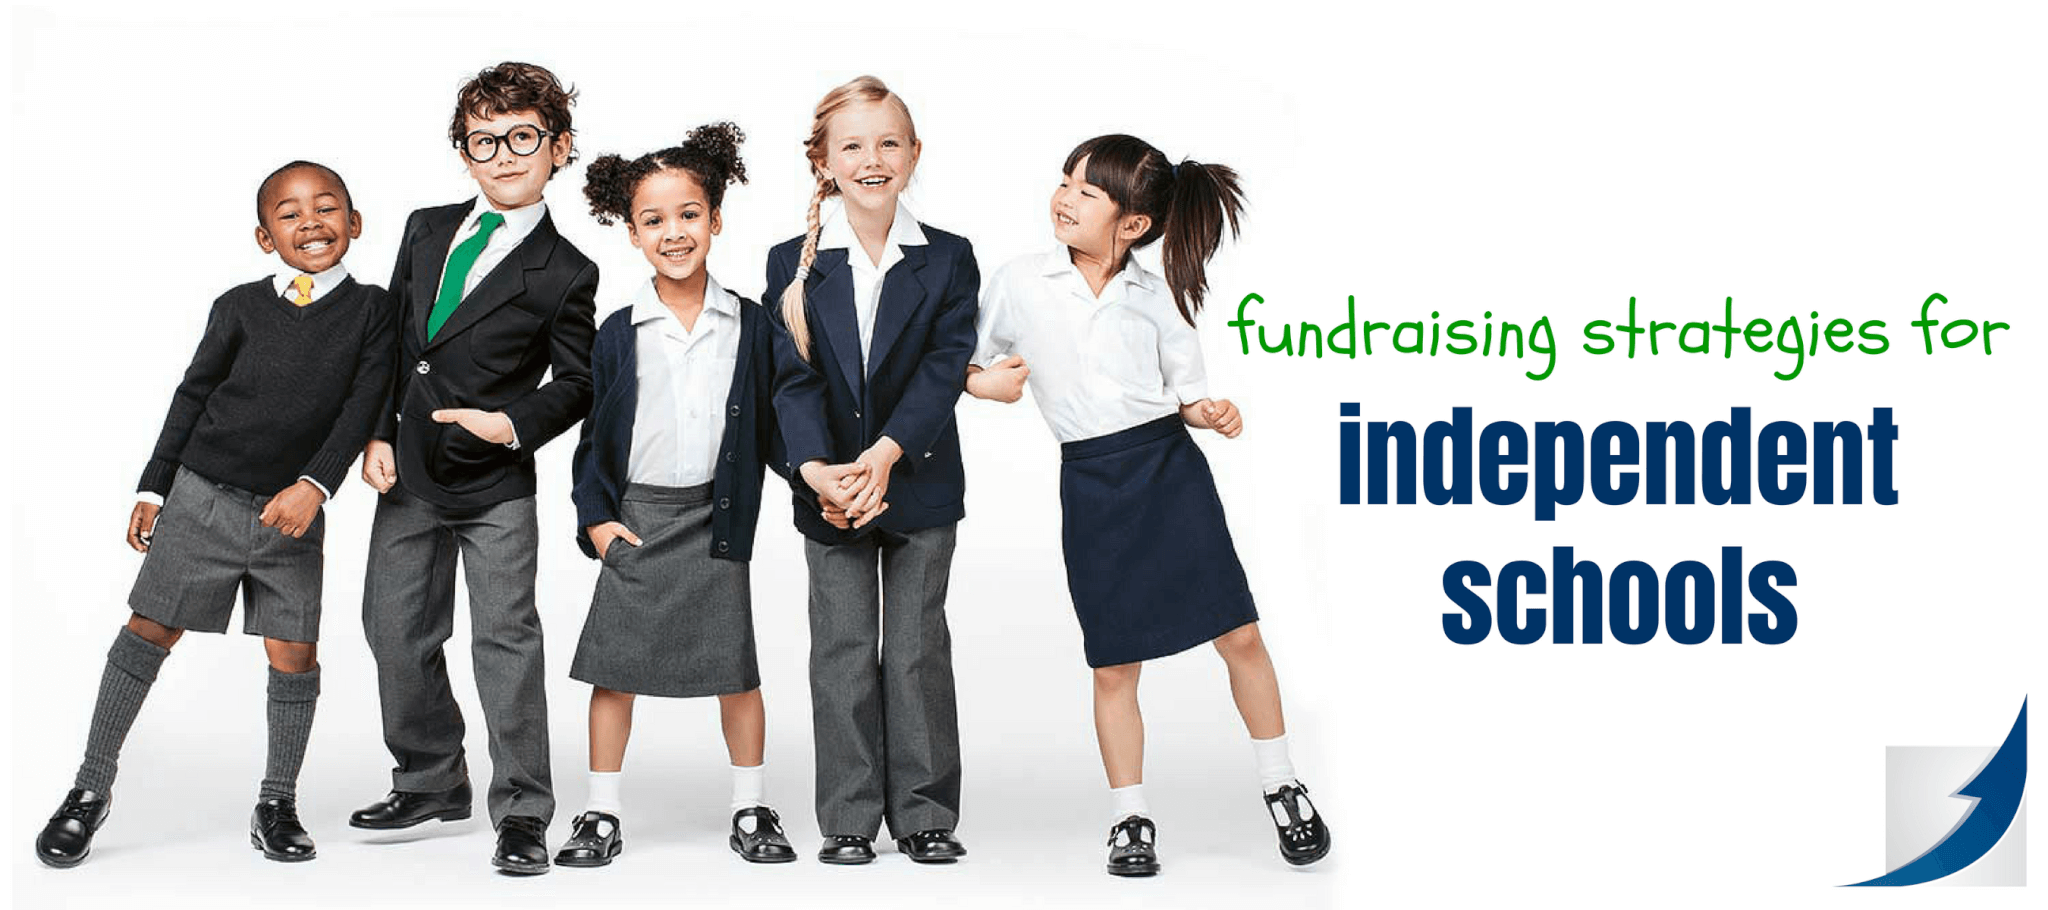 Fundraising Strategies for Independent Schools